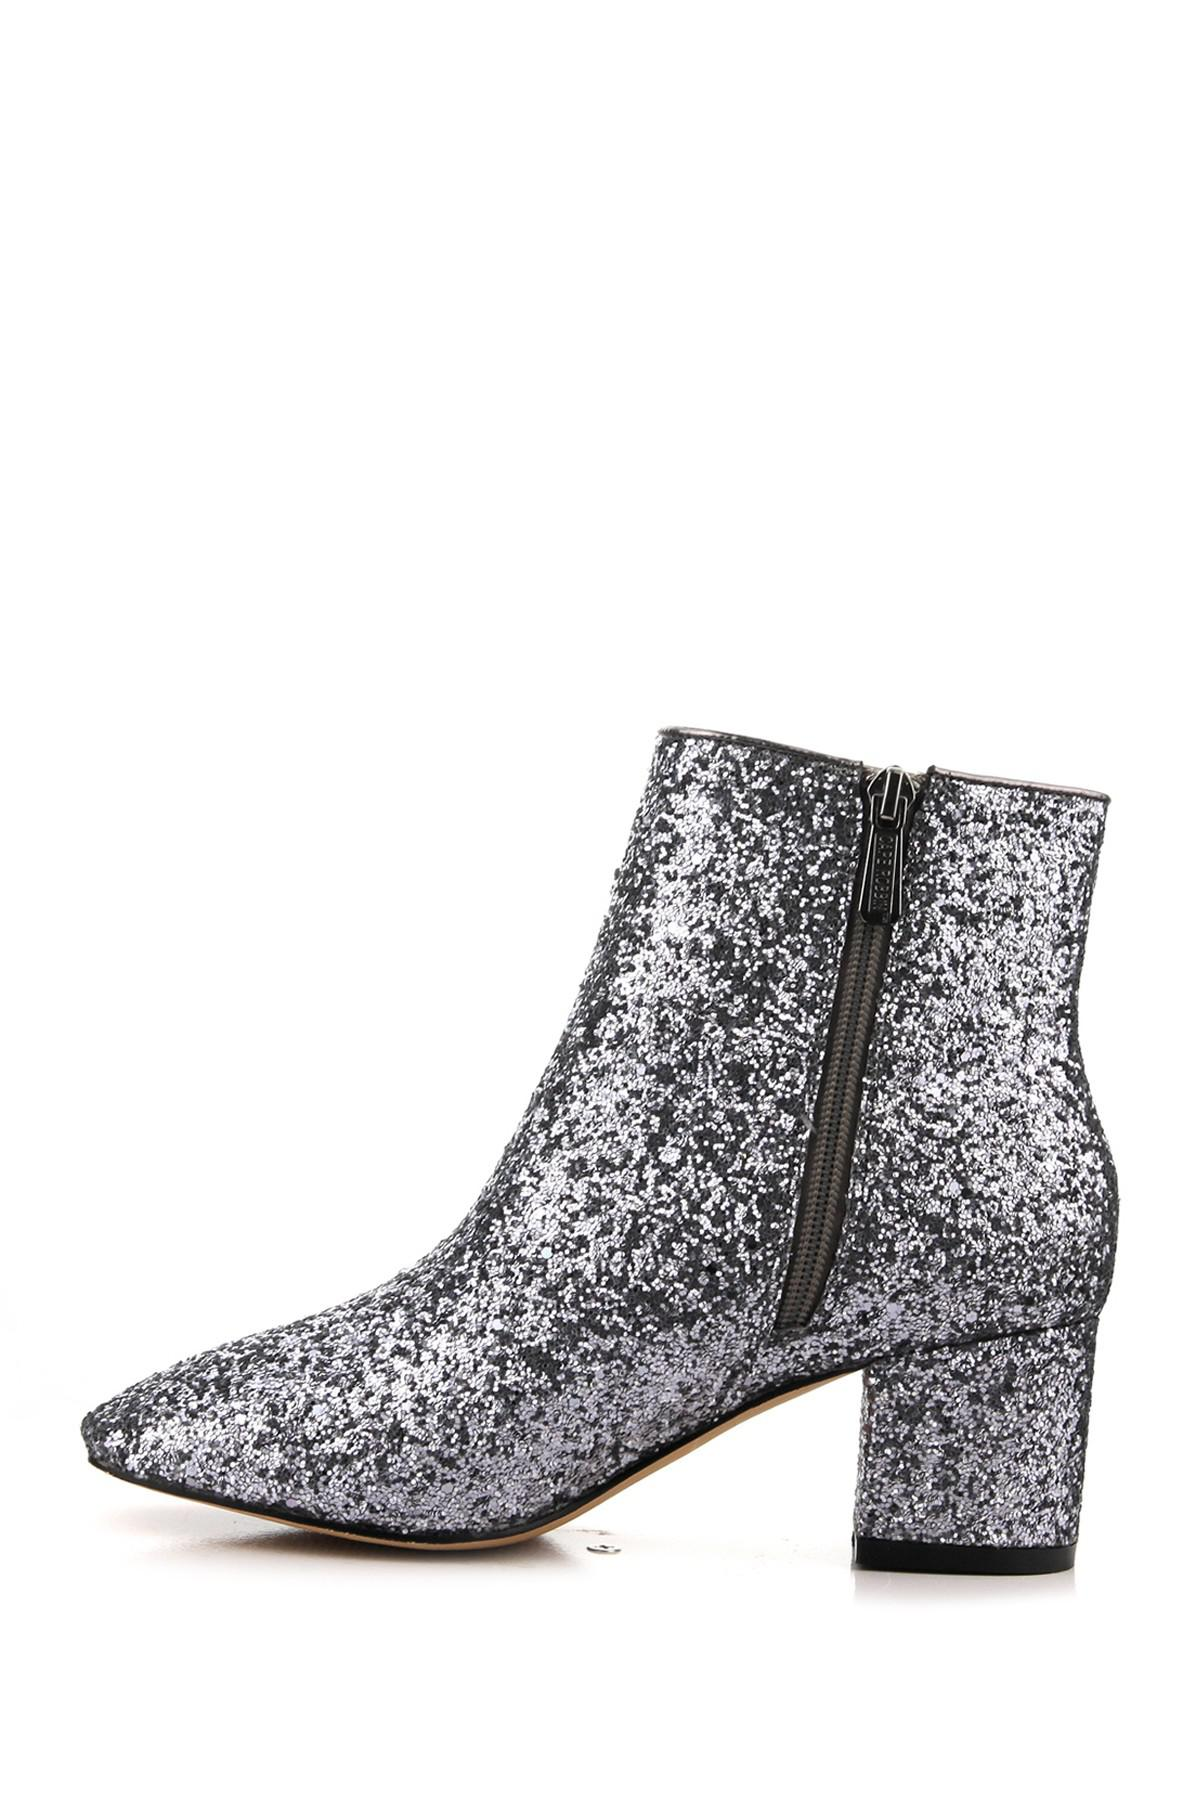 Cape Robbin Tal 1 Pewter Glitter Chunky Block Heeled Short Glitter Ankle Boots